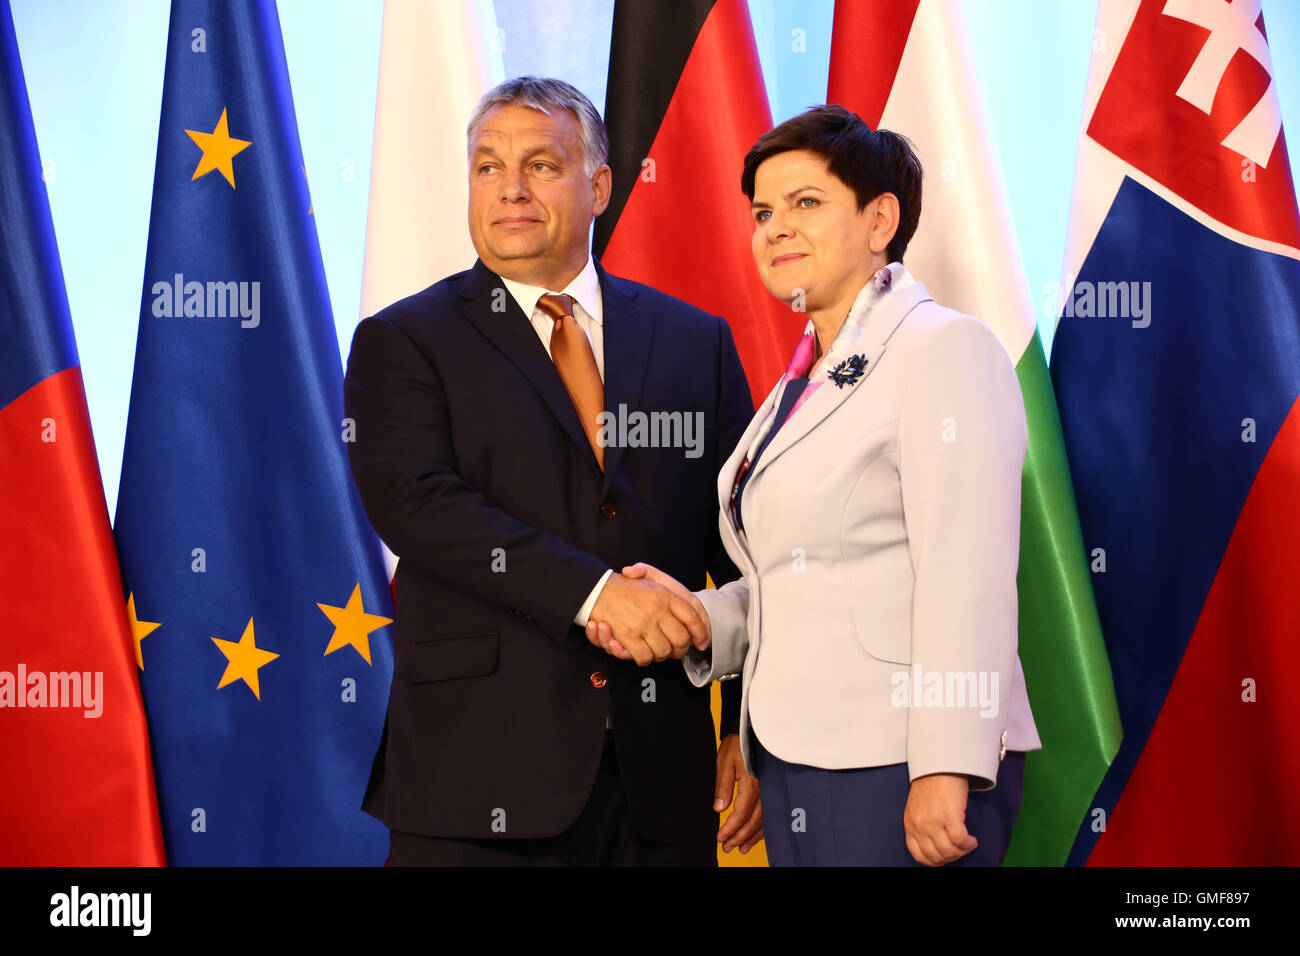 Warsaw, Poland. 26th August, 2016. Polish Prime Minister Beata Szydlo held official meeting with the German Chancellor - Stock Image